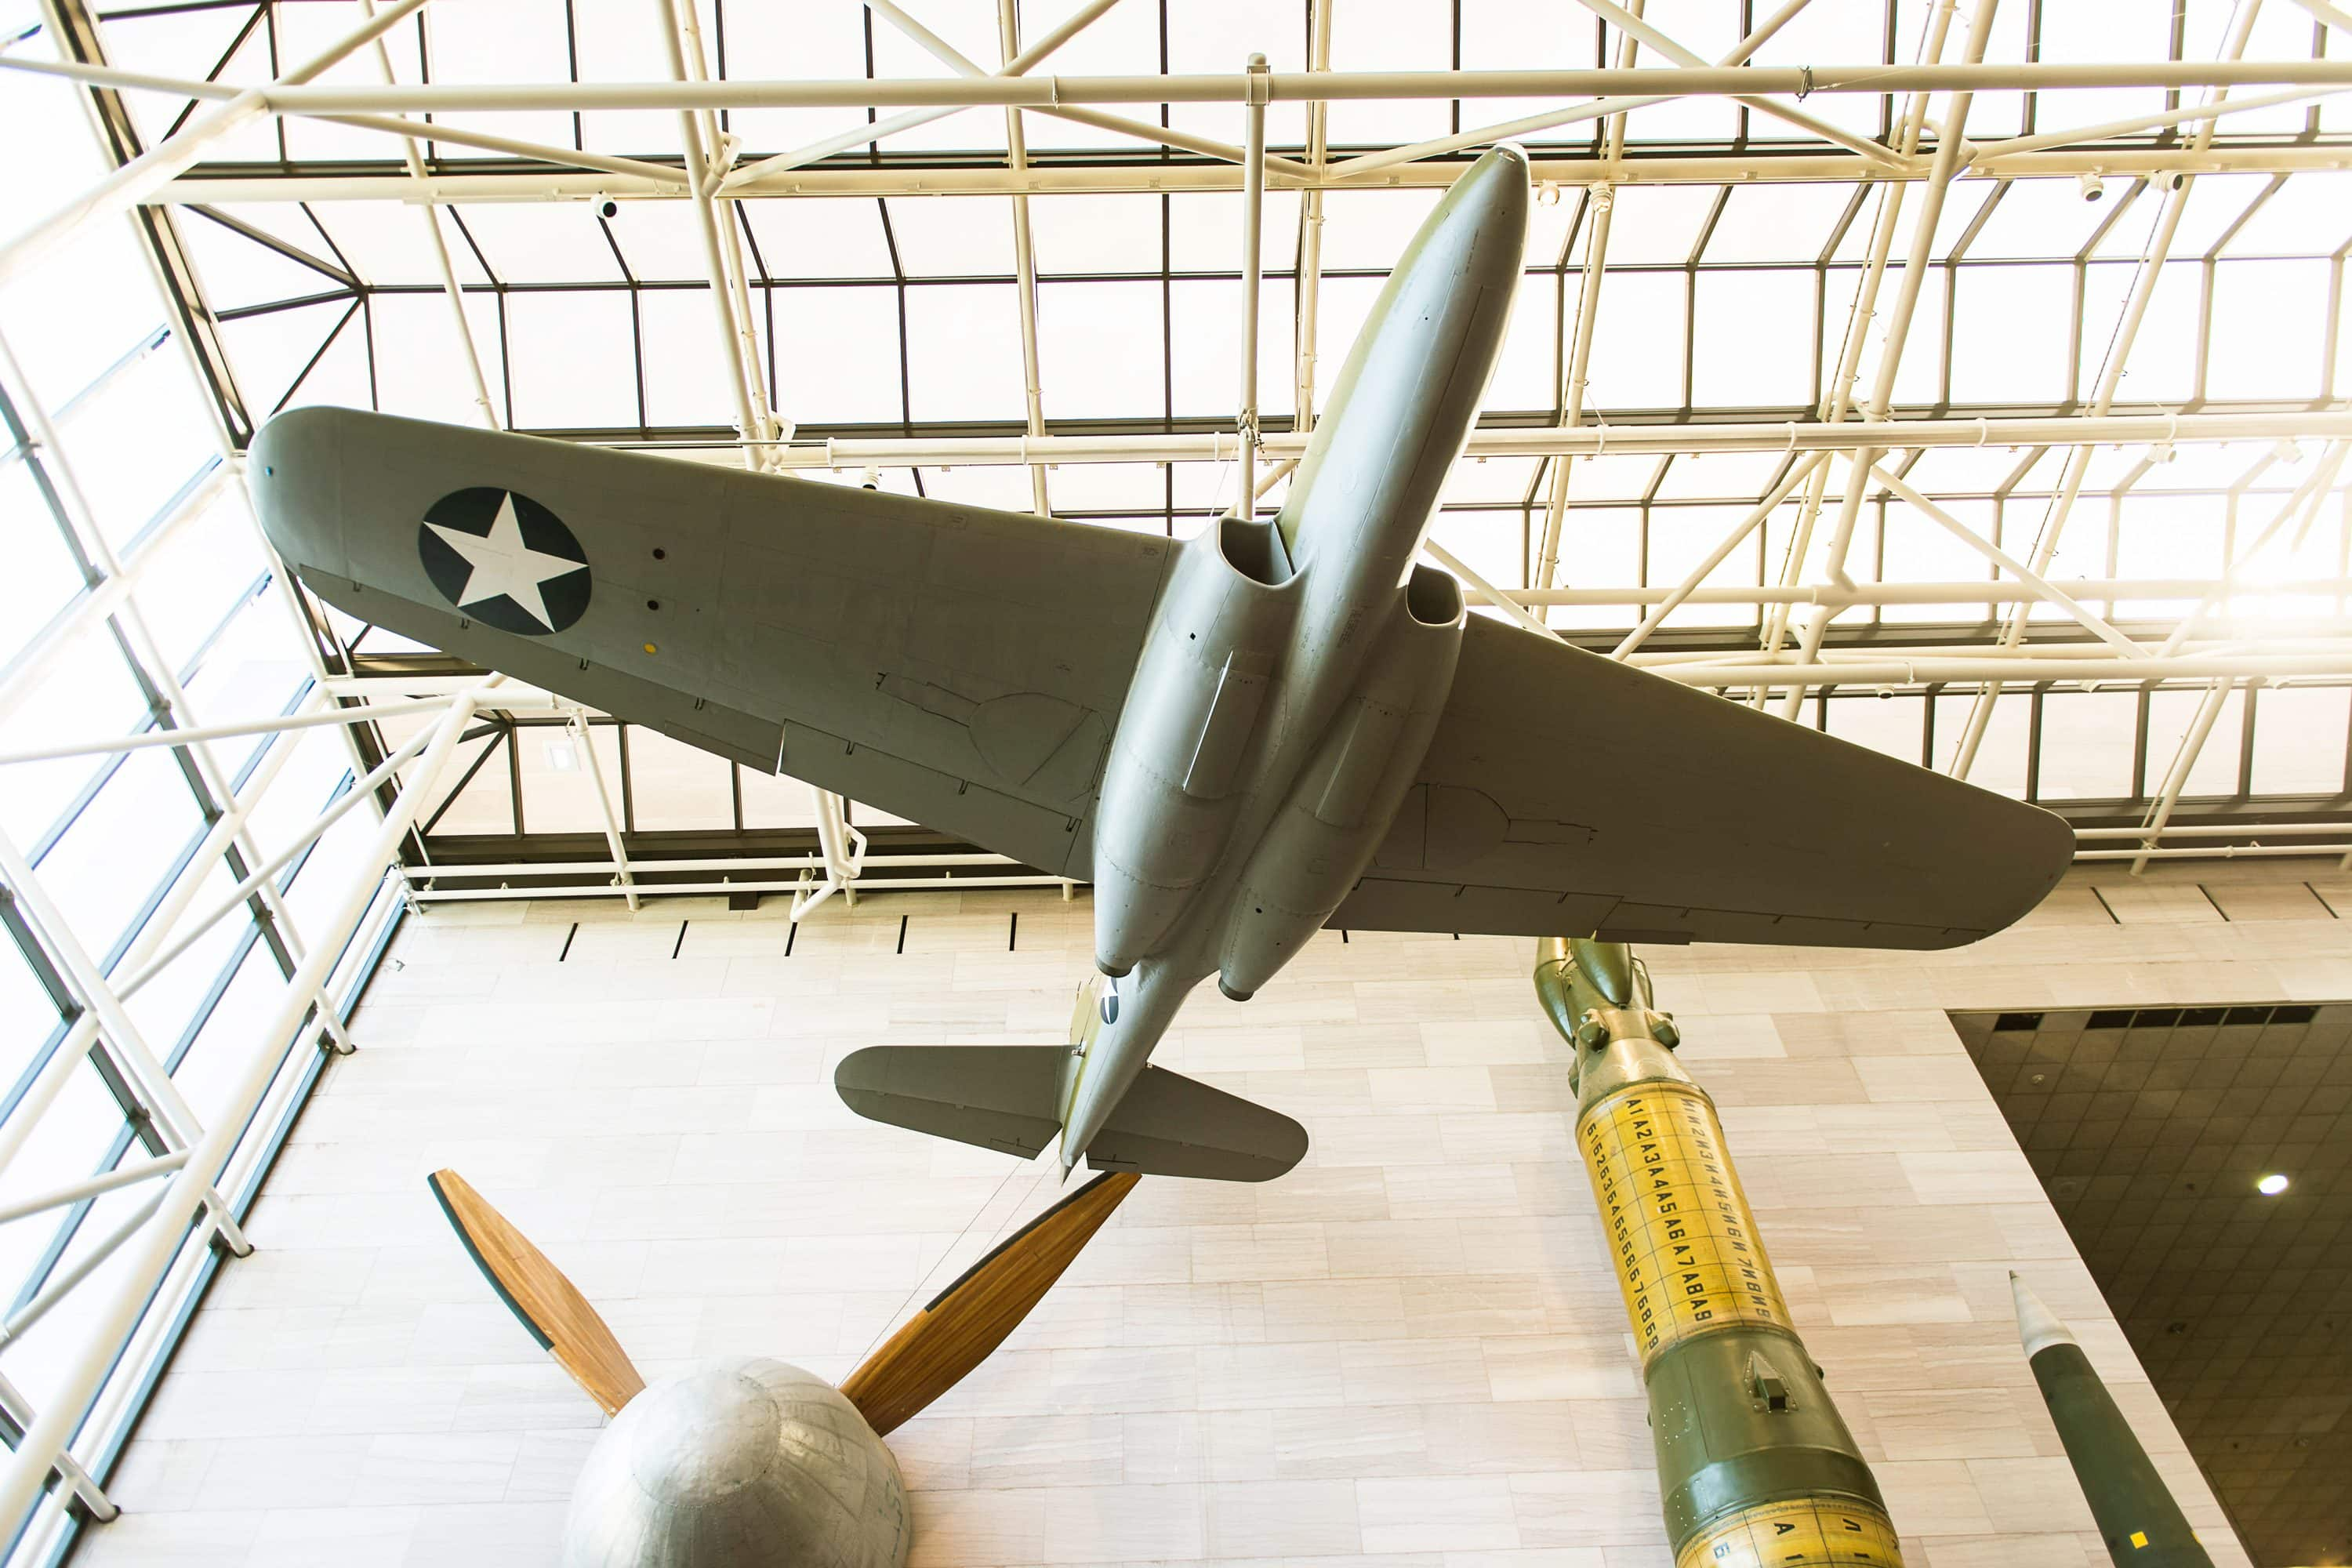 Plane suspended in the air at the National Air and Space Museum, Washington D.C.